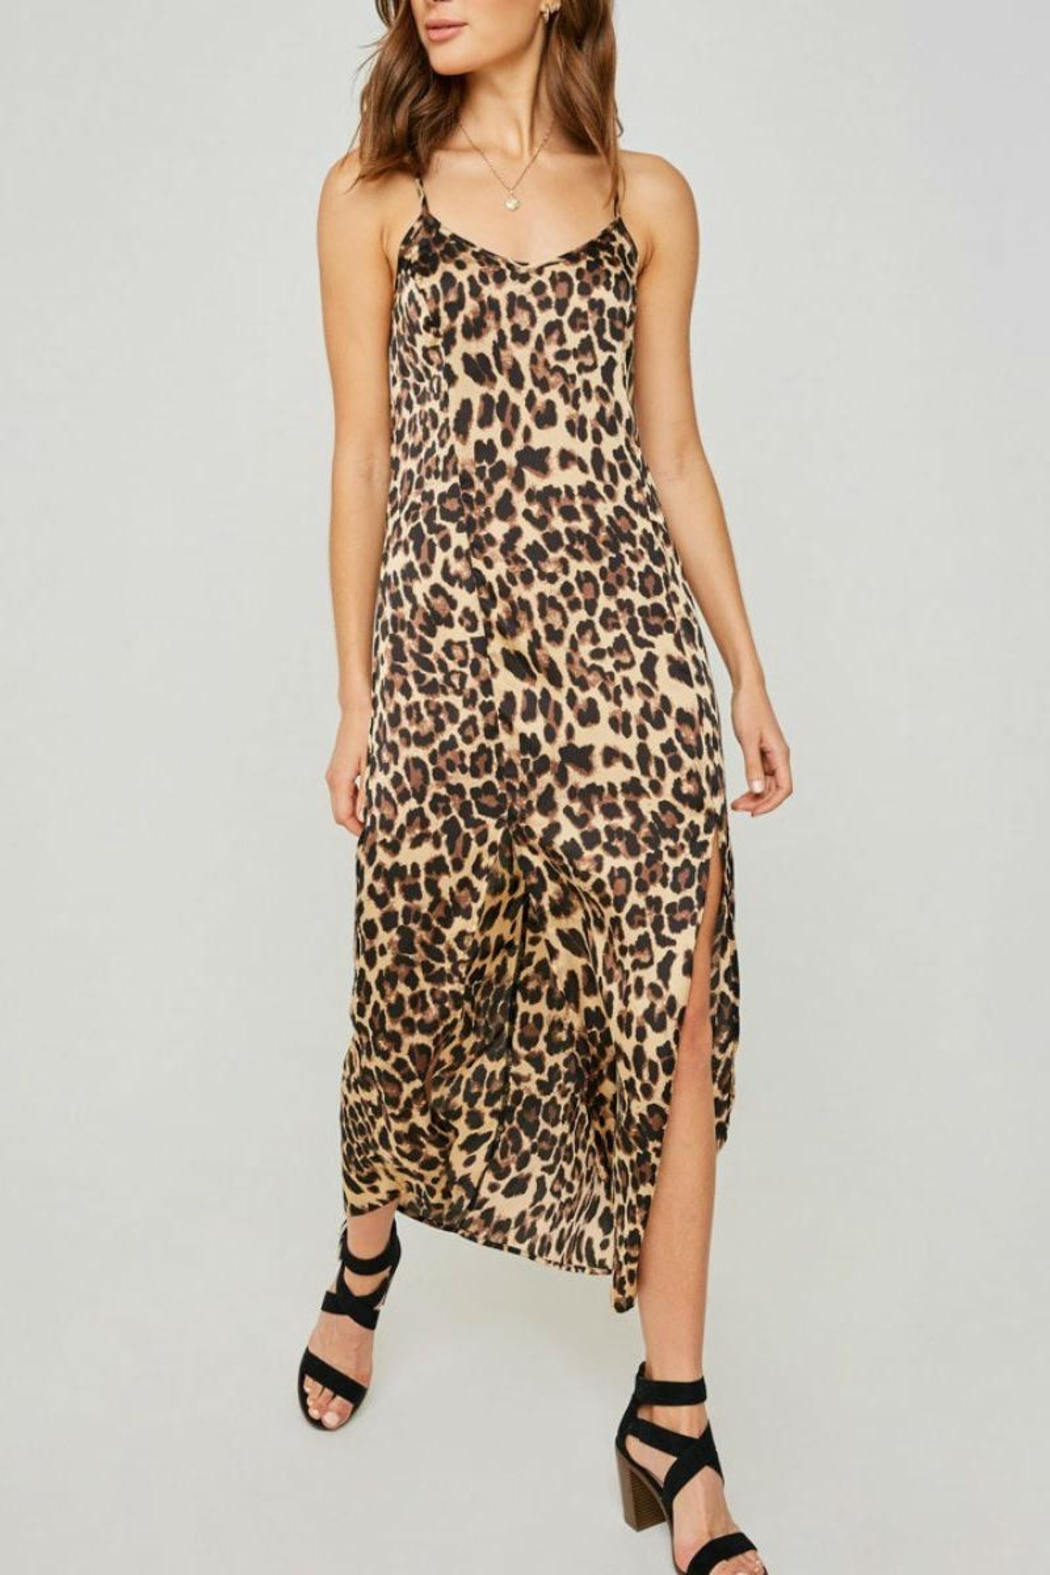 9e2764d8d499ce Hayden Los Angeles Leopard Slip Dress from Brooklyn by Glam ...